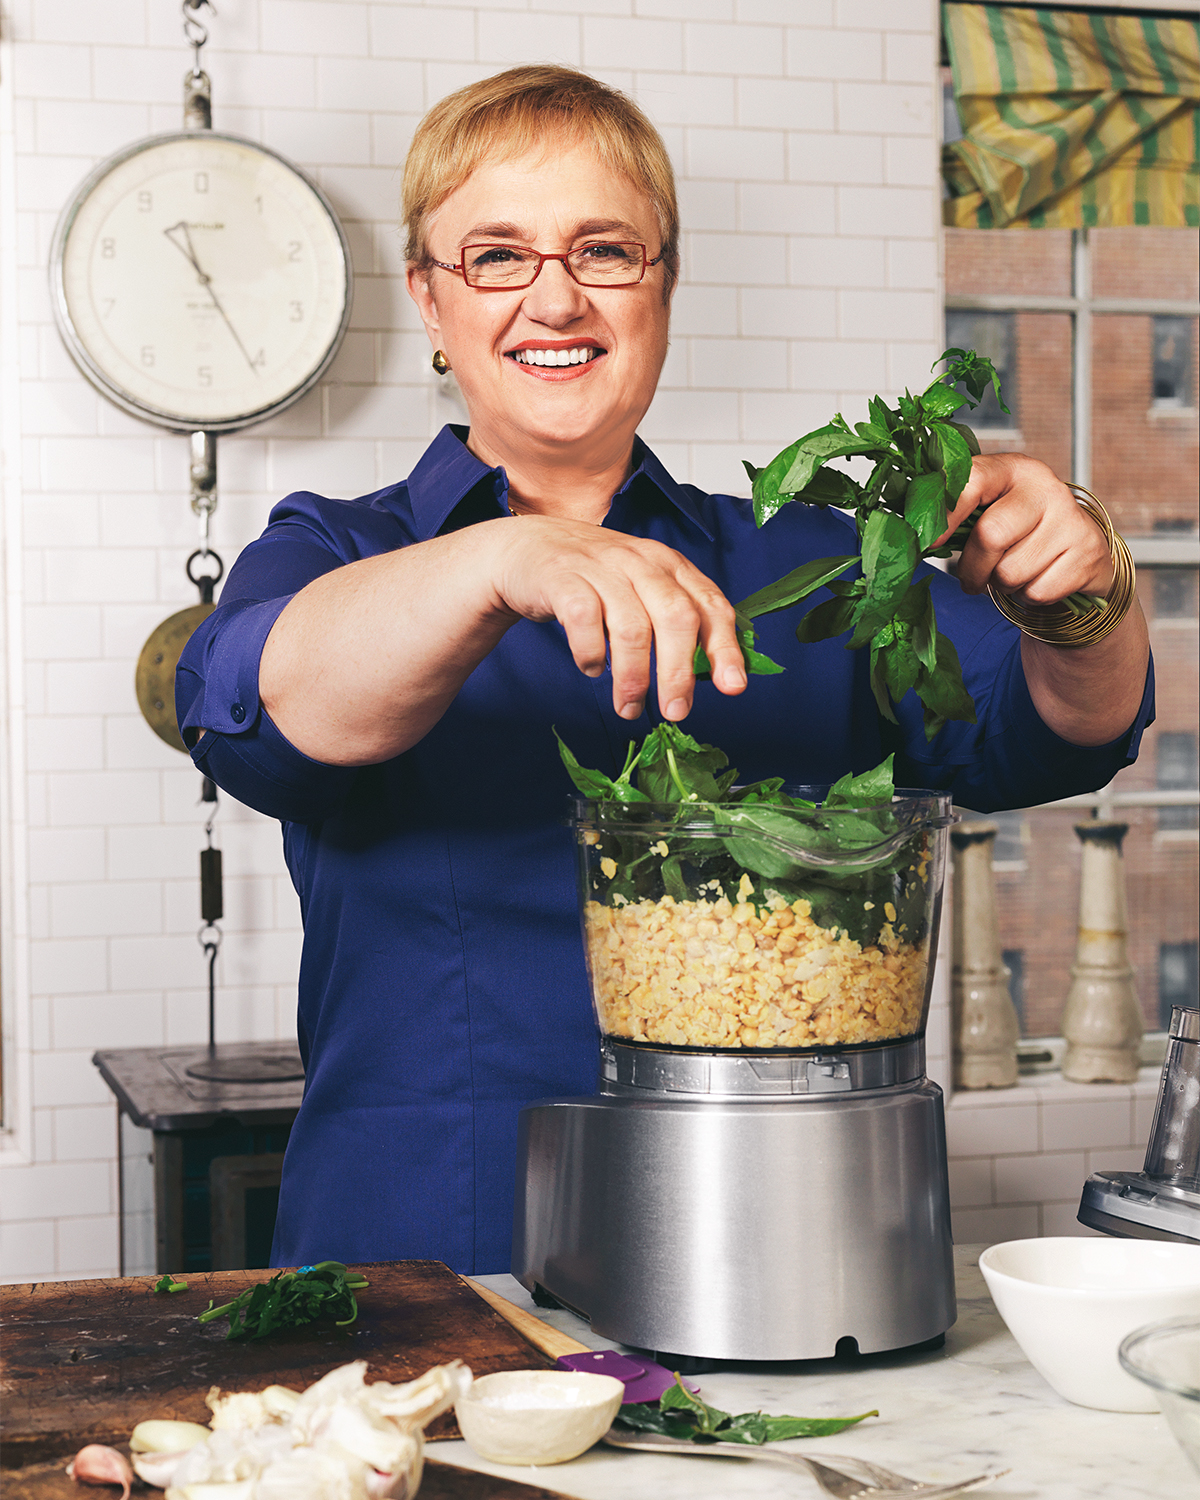 Lidia using food processor for herbs and chickpeas